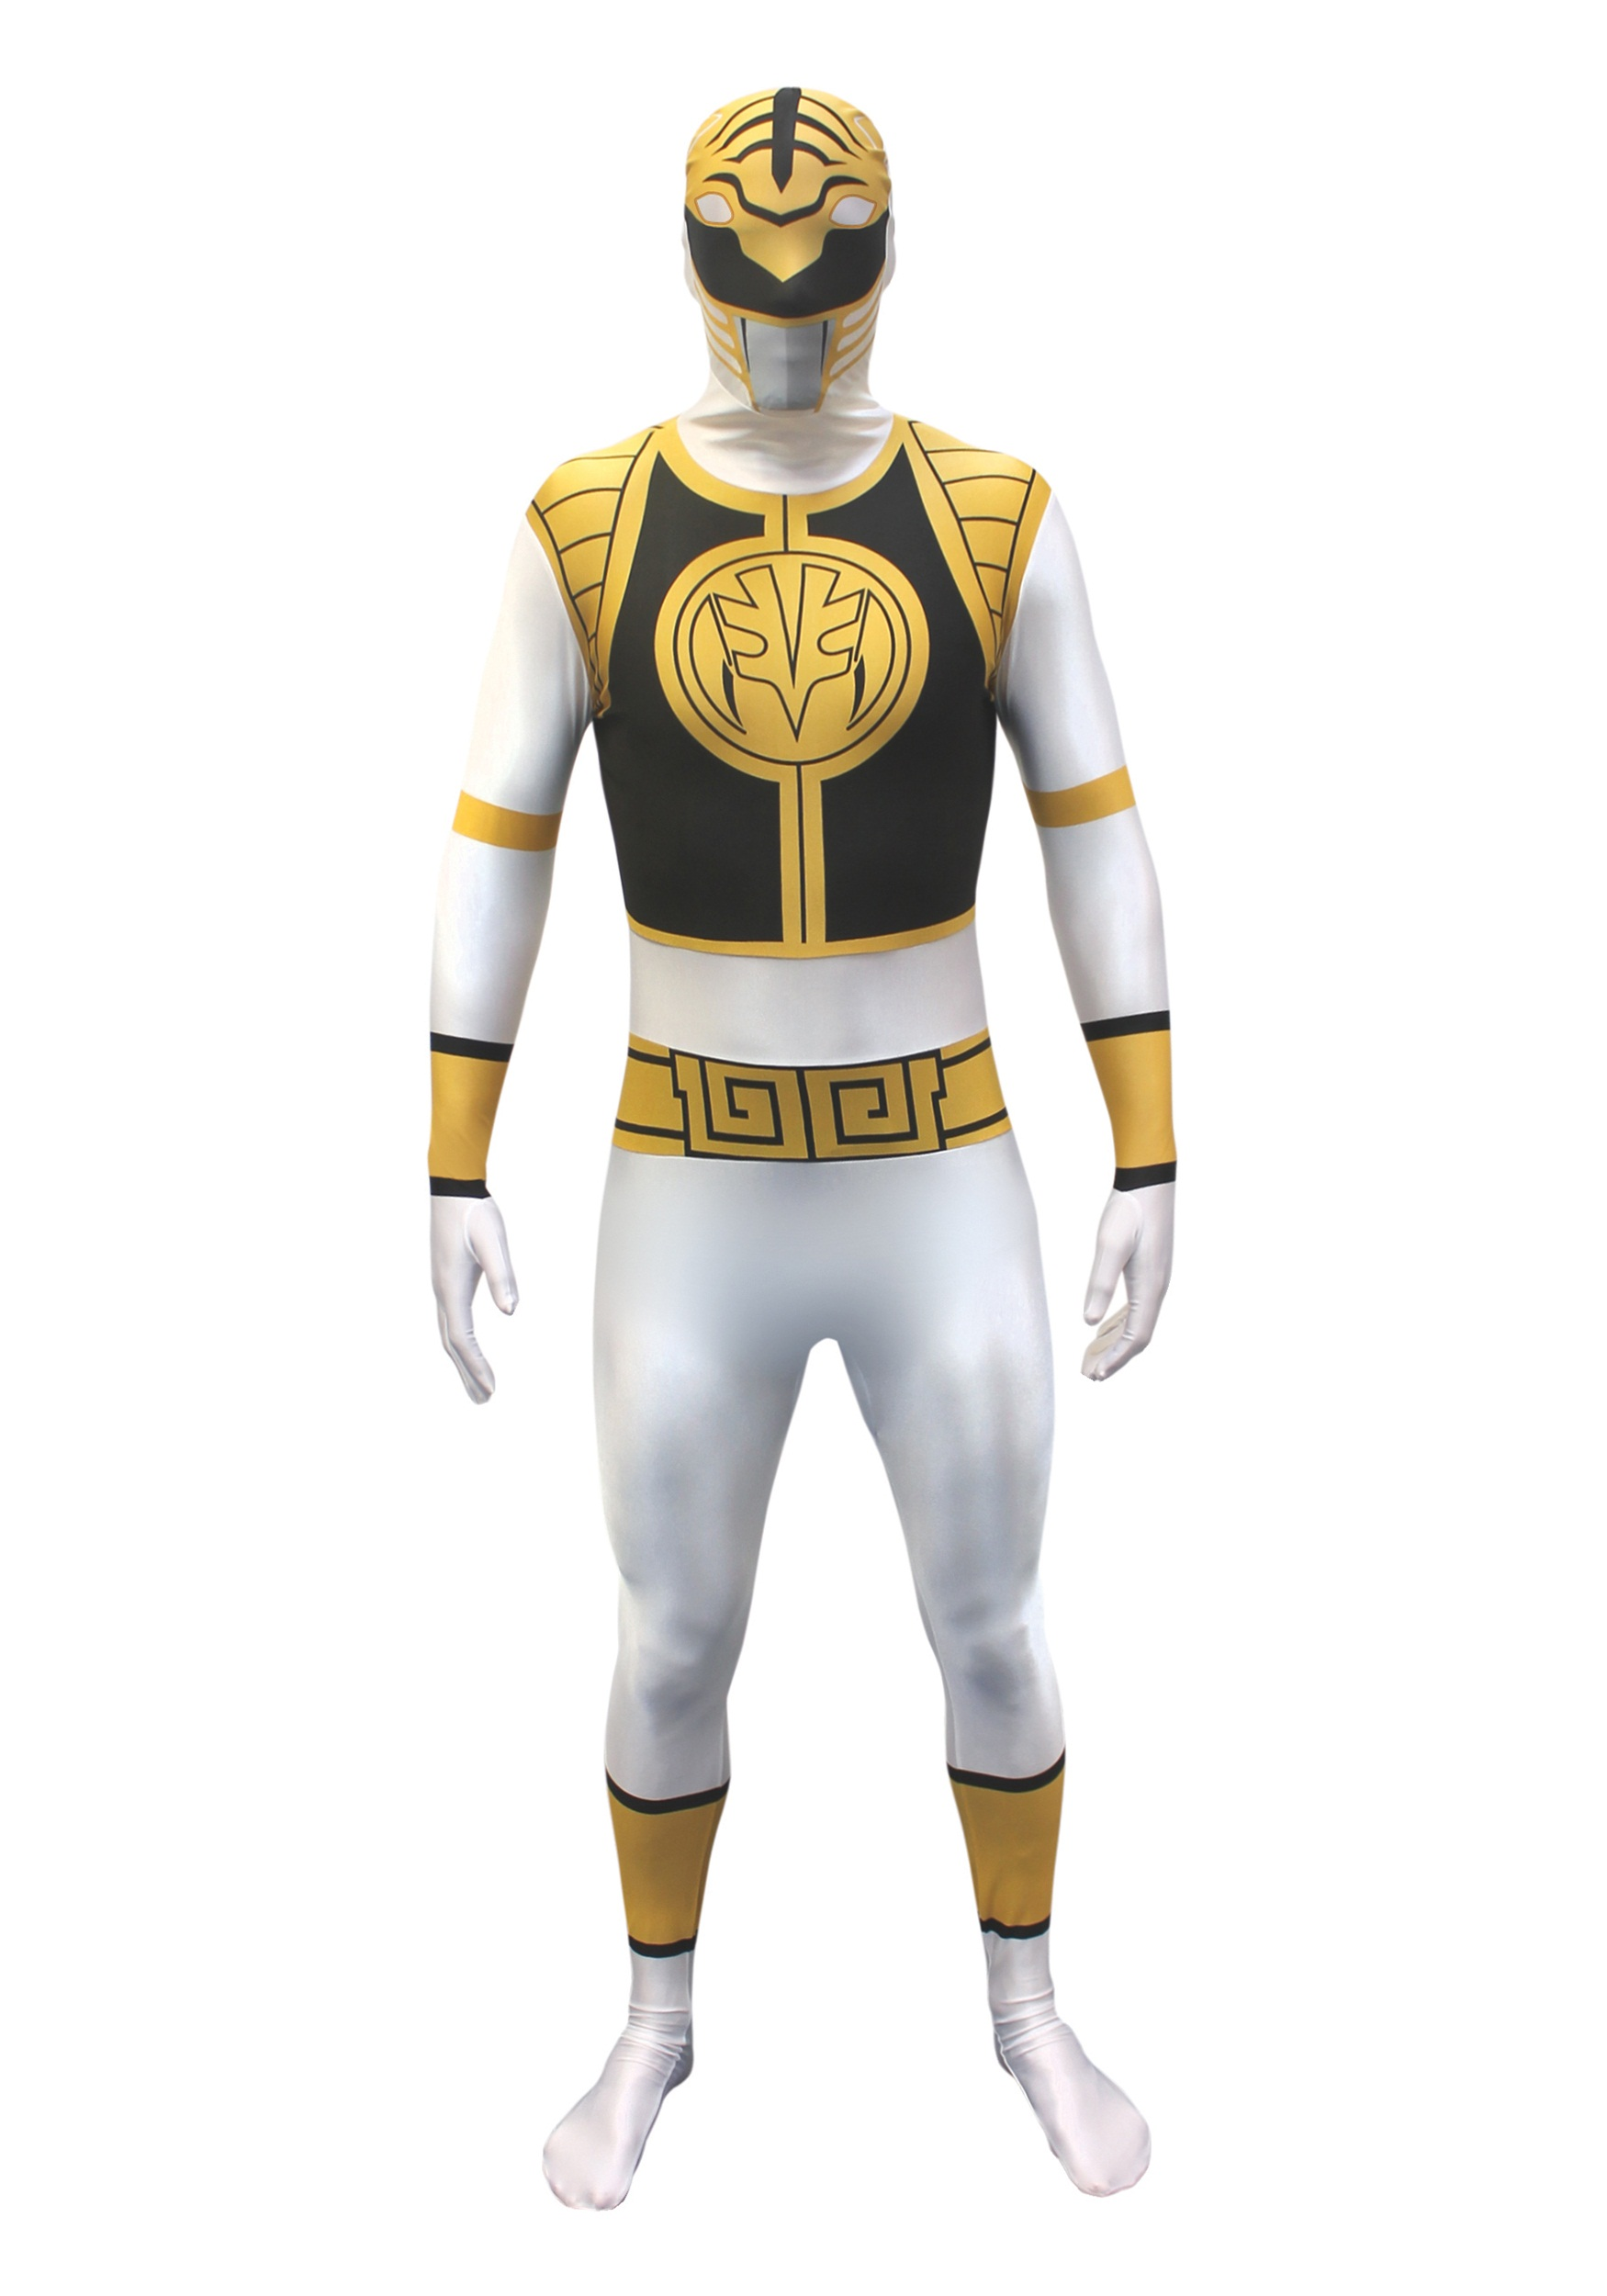 Power Rangers: White Ranger Morphsuit MPMLPRWM